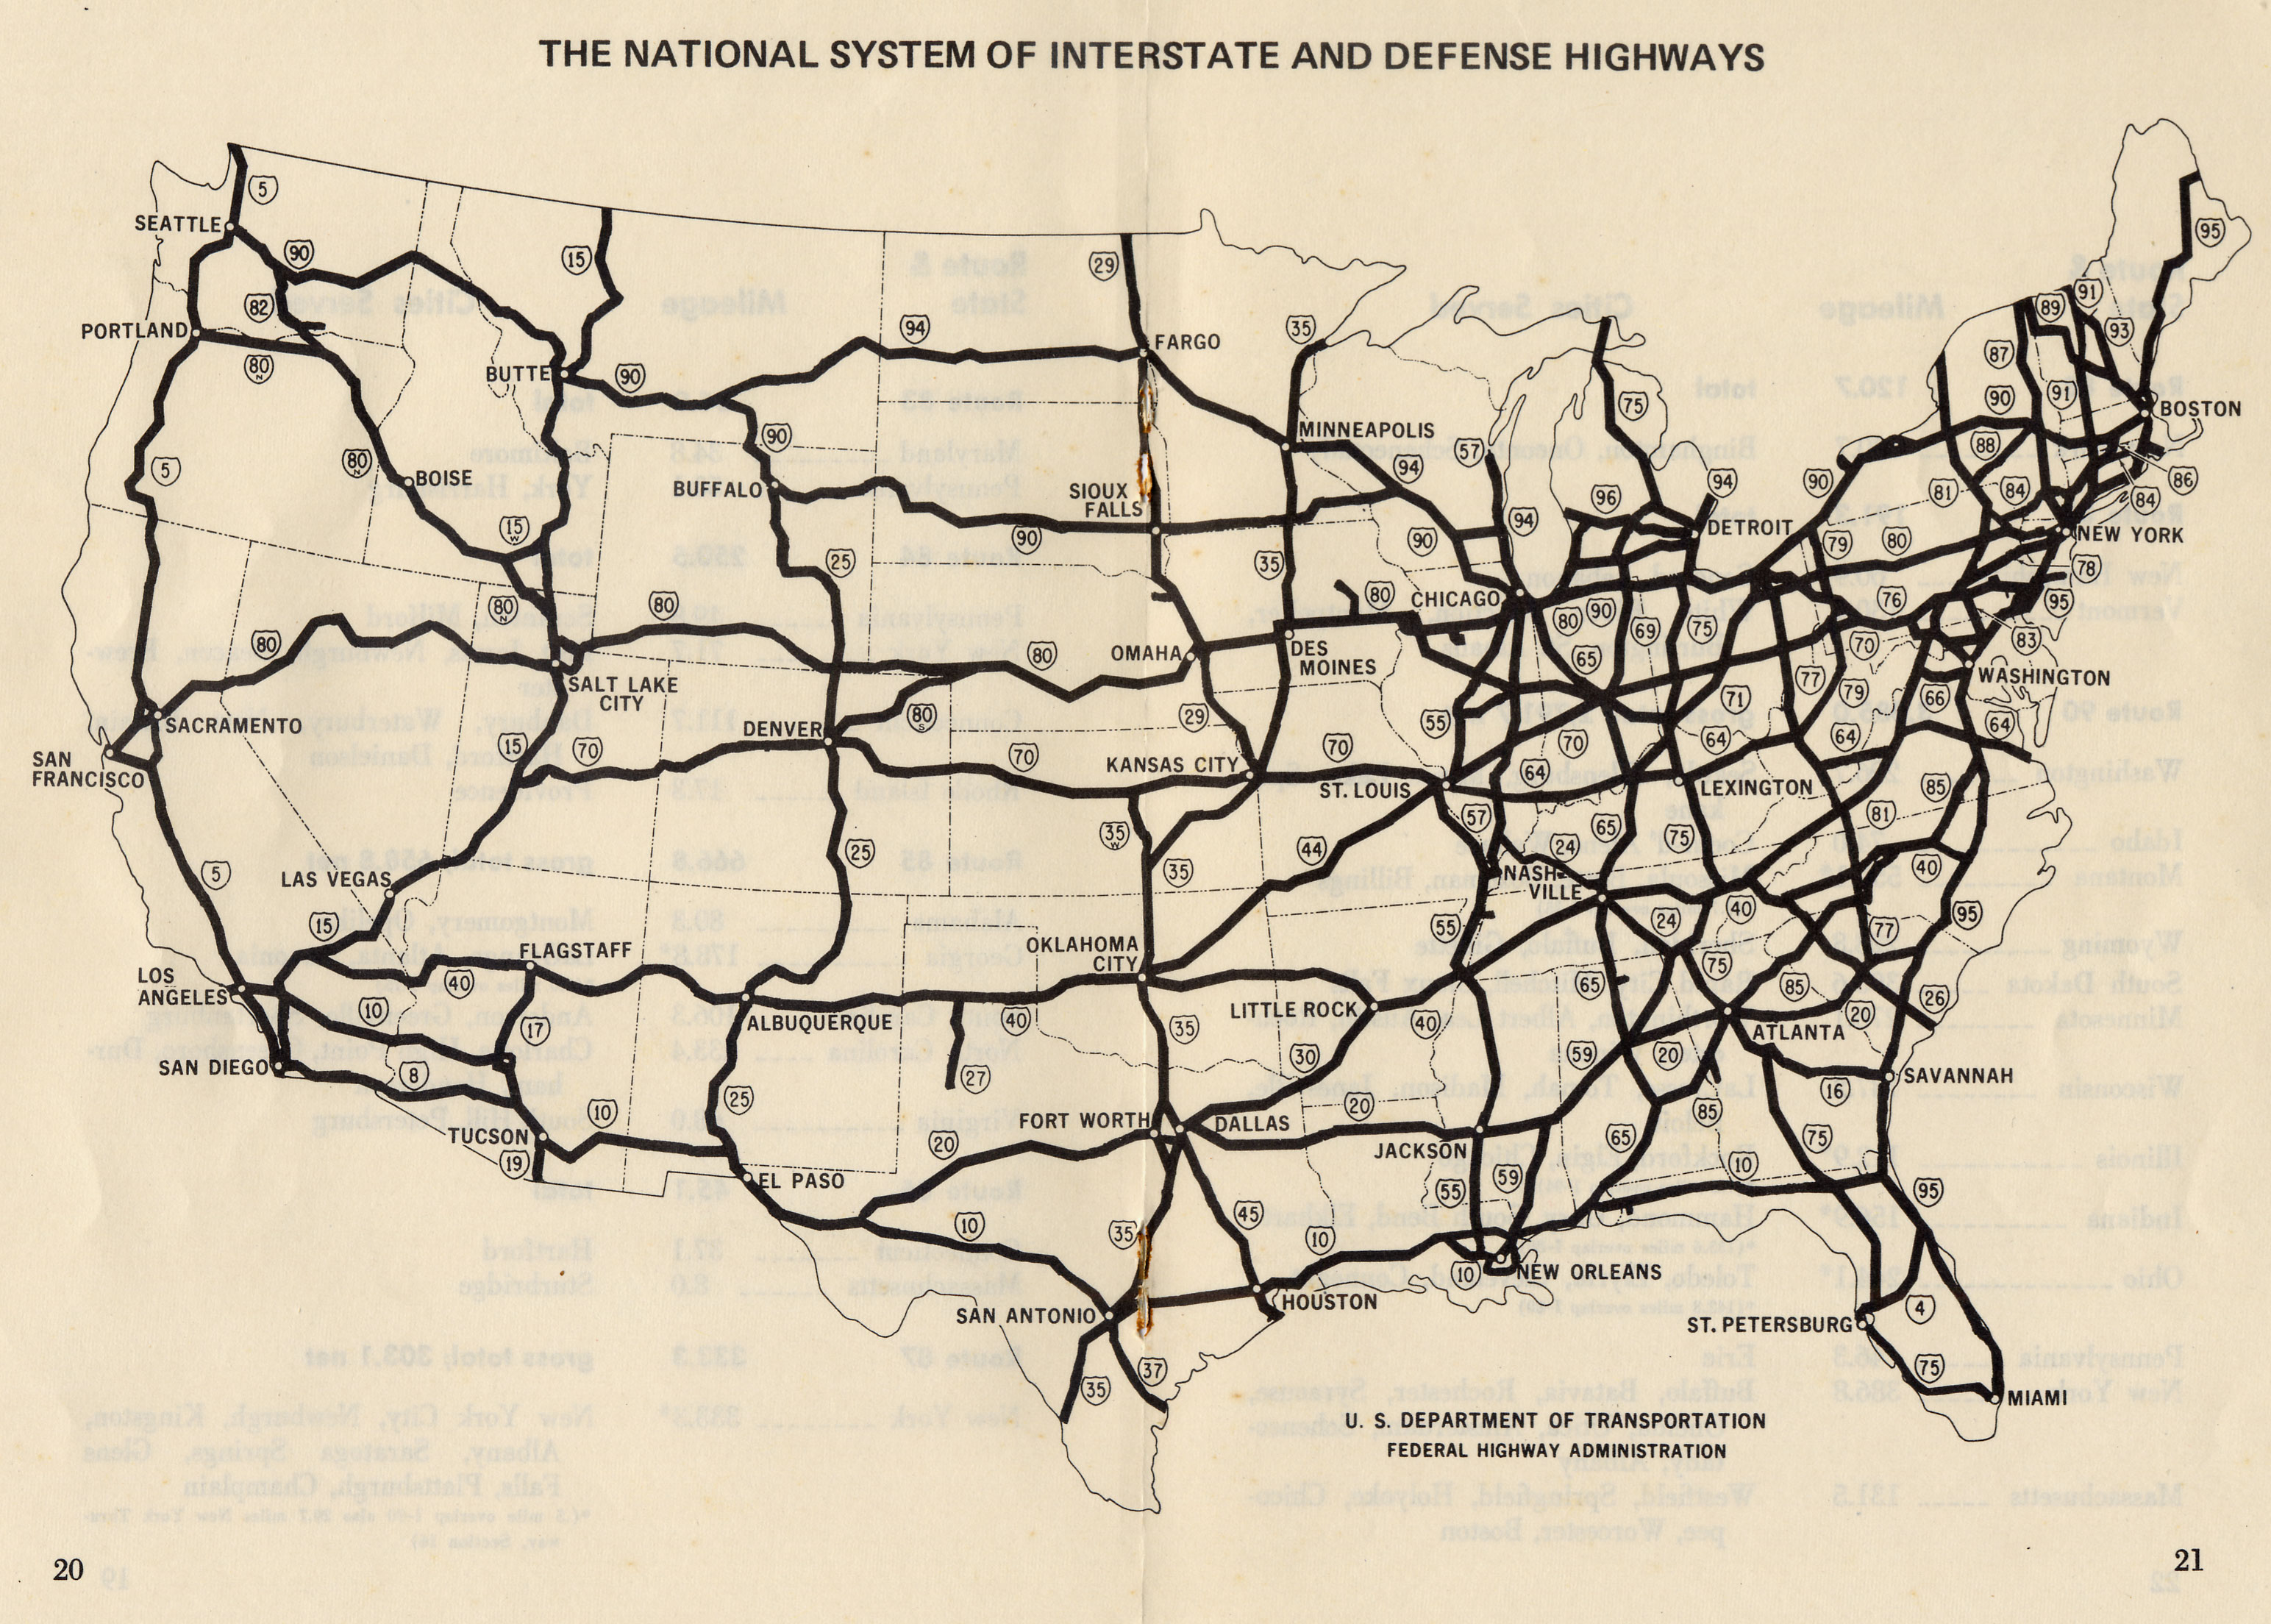 Free Printable Us Road Maps Wiring Get Free Images About World - Eastern us road maps with states and cities